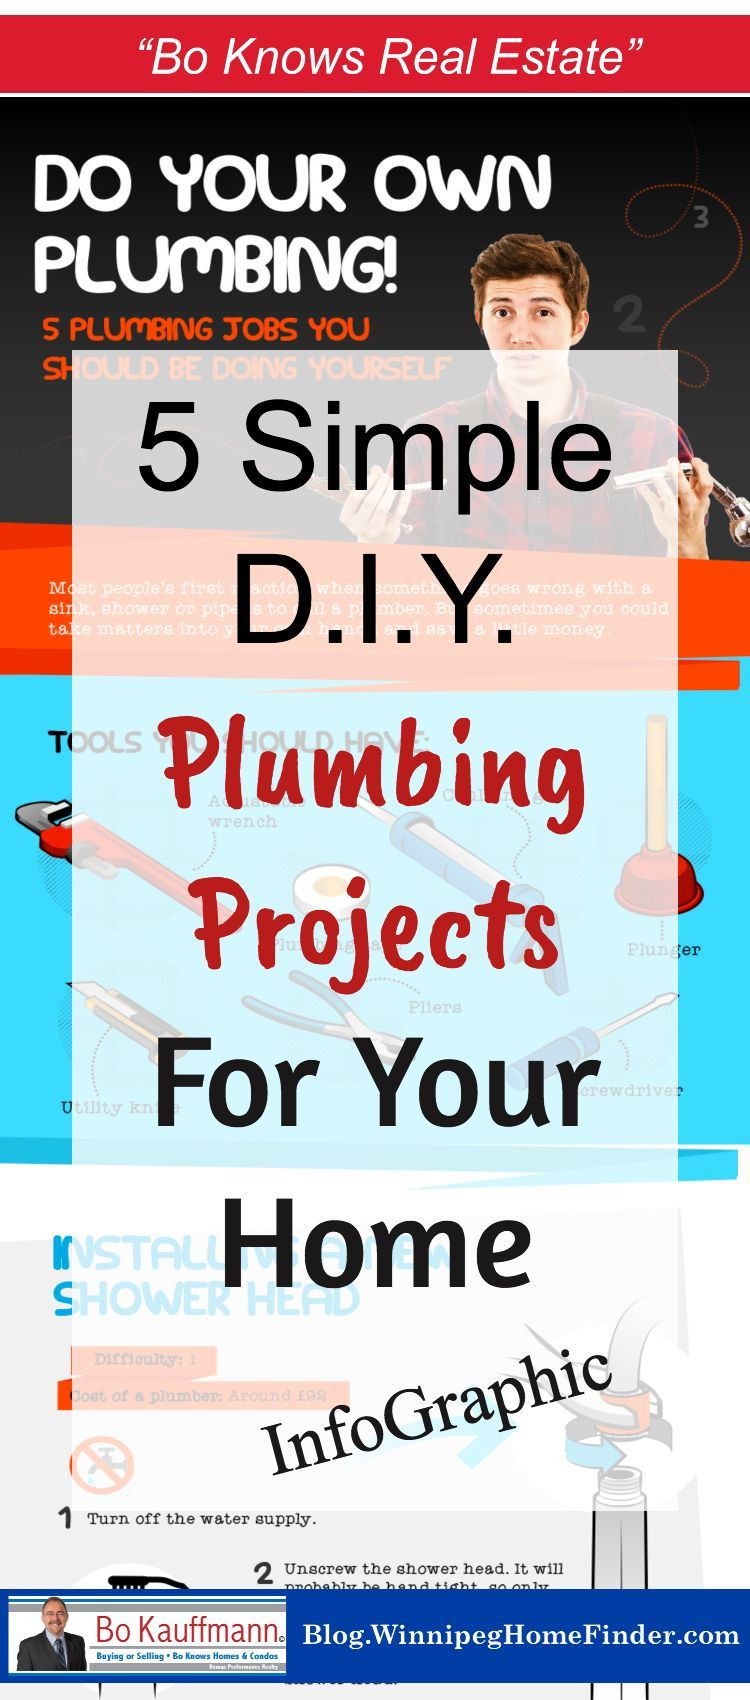 5 simple plumbing projects you can do yourself homeowner plumbing 5 simple plumbing projects you can do yourself homeowner plumbing projects diy infographic 5 solutioingenieria Images